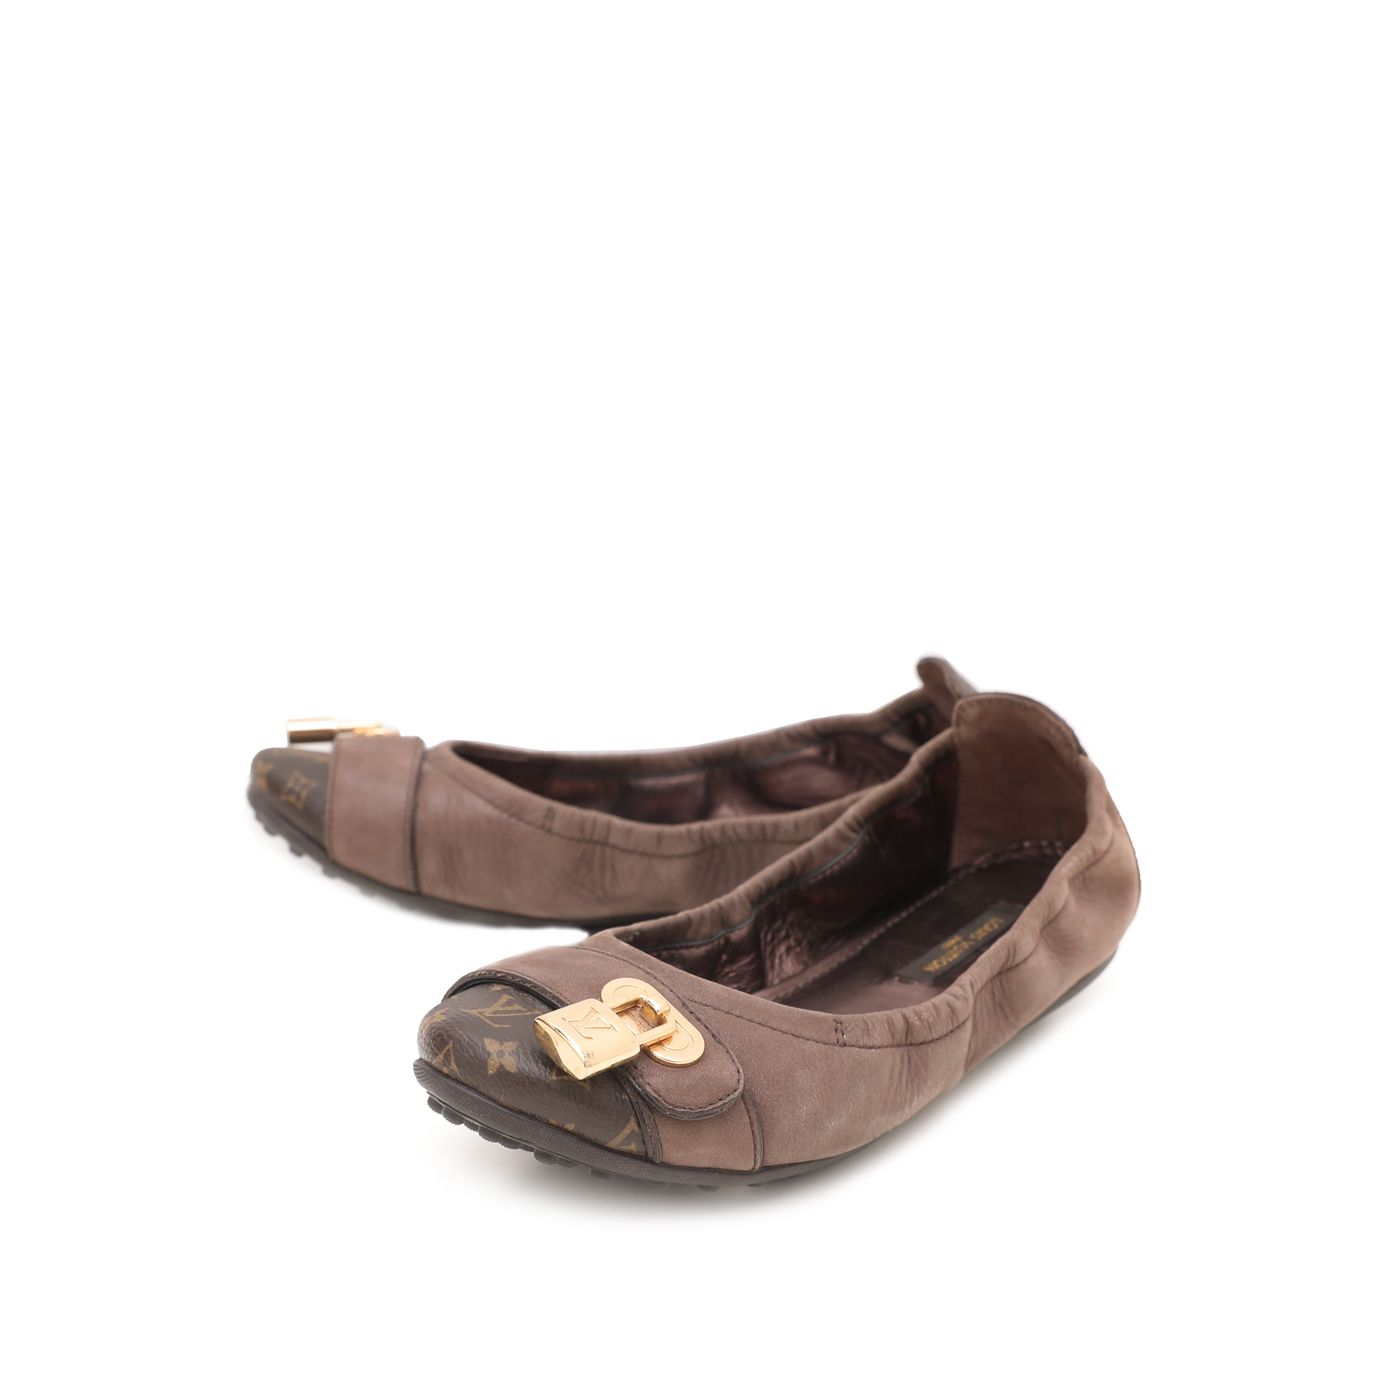 Louis Vuitton Brown Monogram Iridescent Lucky Ballerina Flats 35